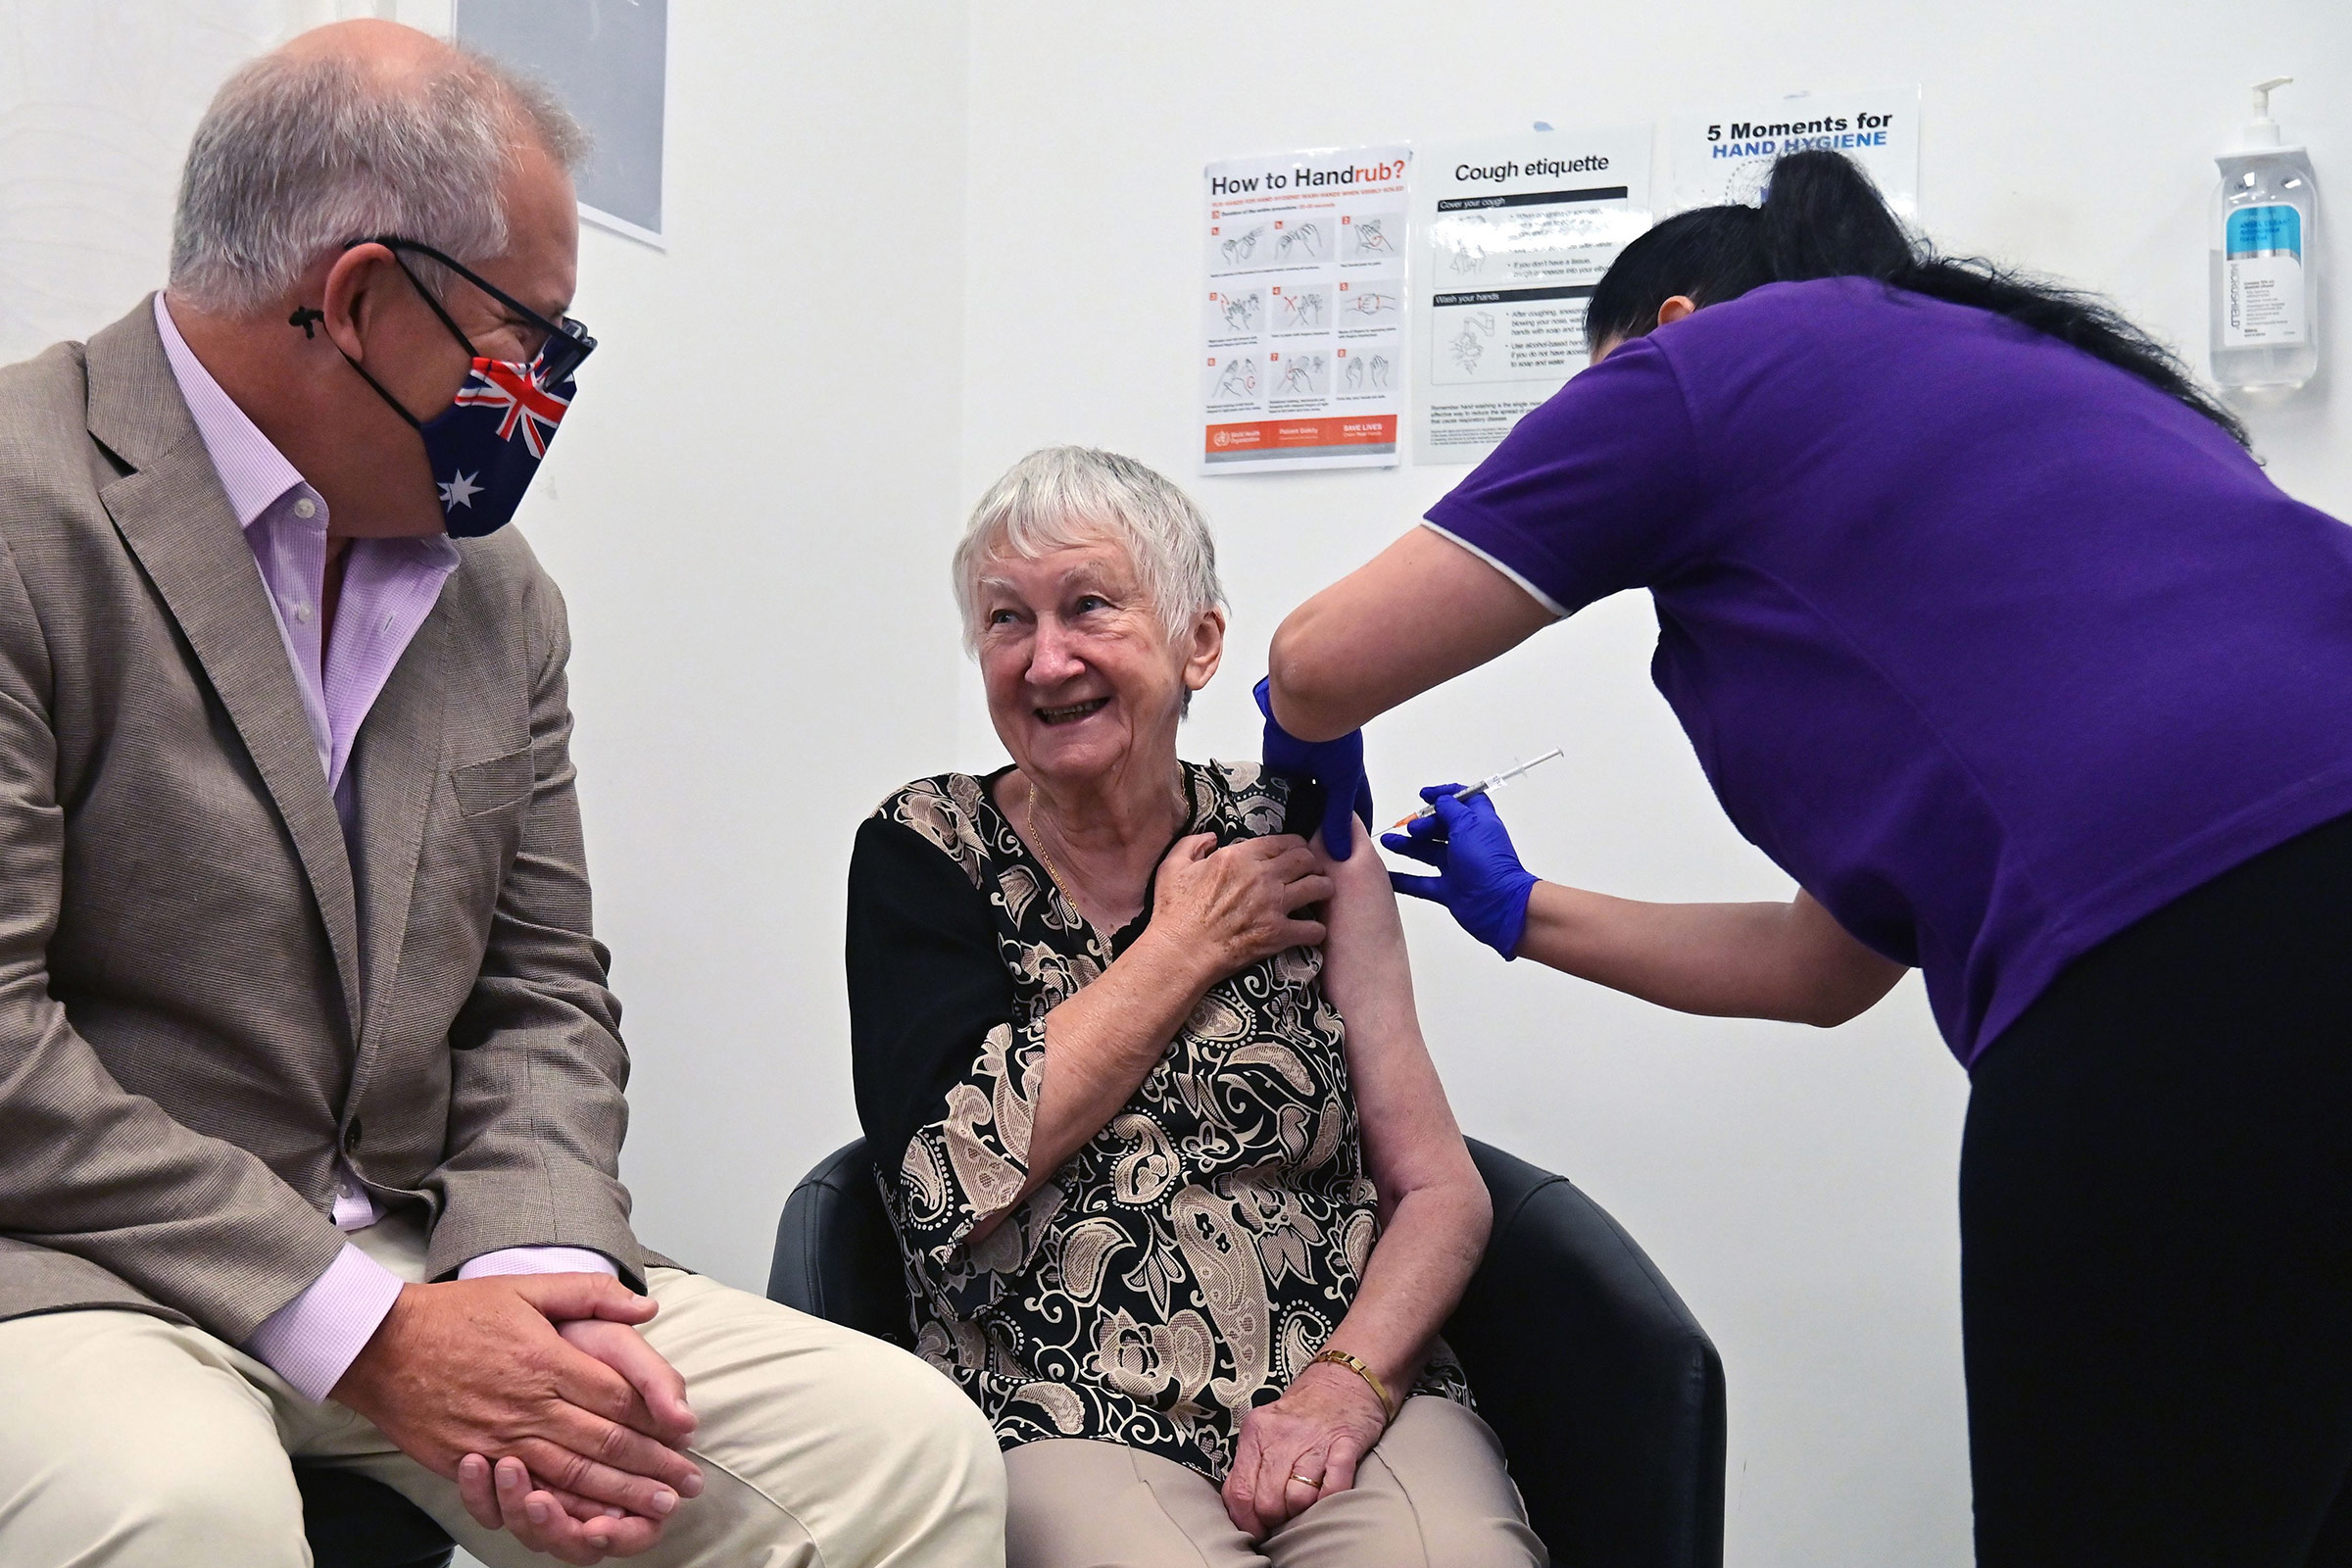 Australia's Prime Minister Scott Morrison looks on as Jane Malysiak becomes the first person in the country to receive a dose of the Pfizer/BioNTech Covid-19 vaccine in Sydney on February 21.